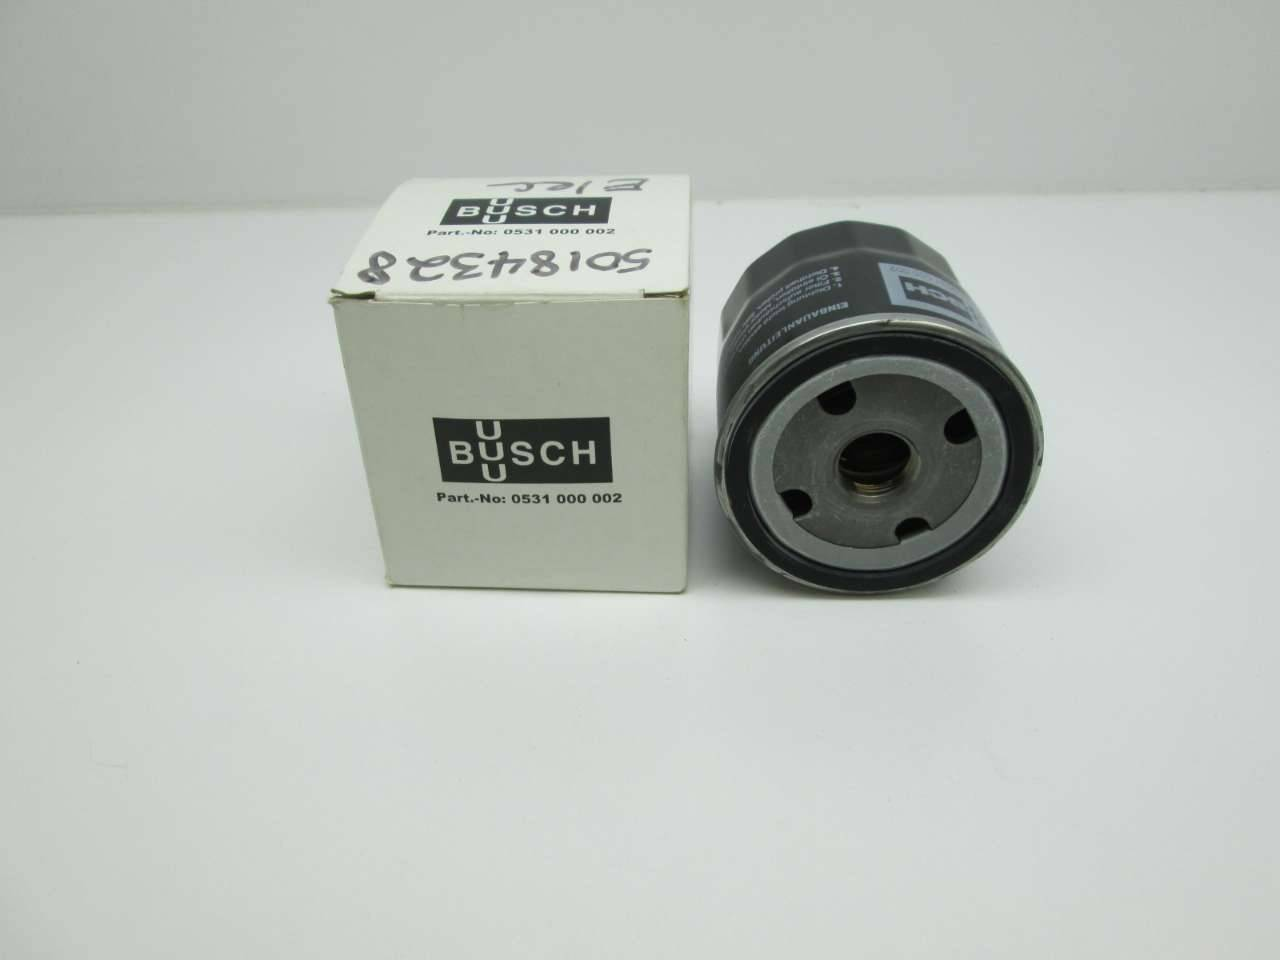 Busch 0531.001.000 Replacement Filter by Mission Filter INC